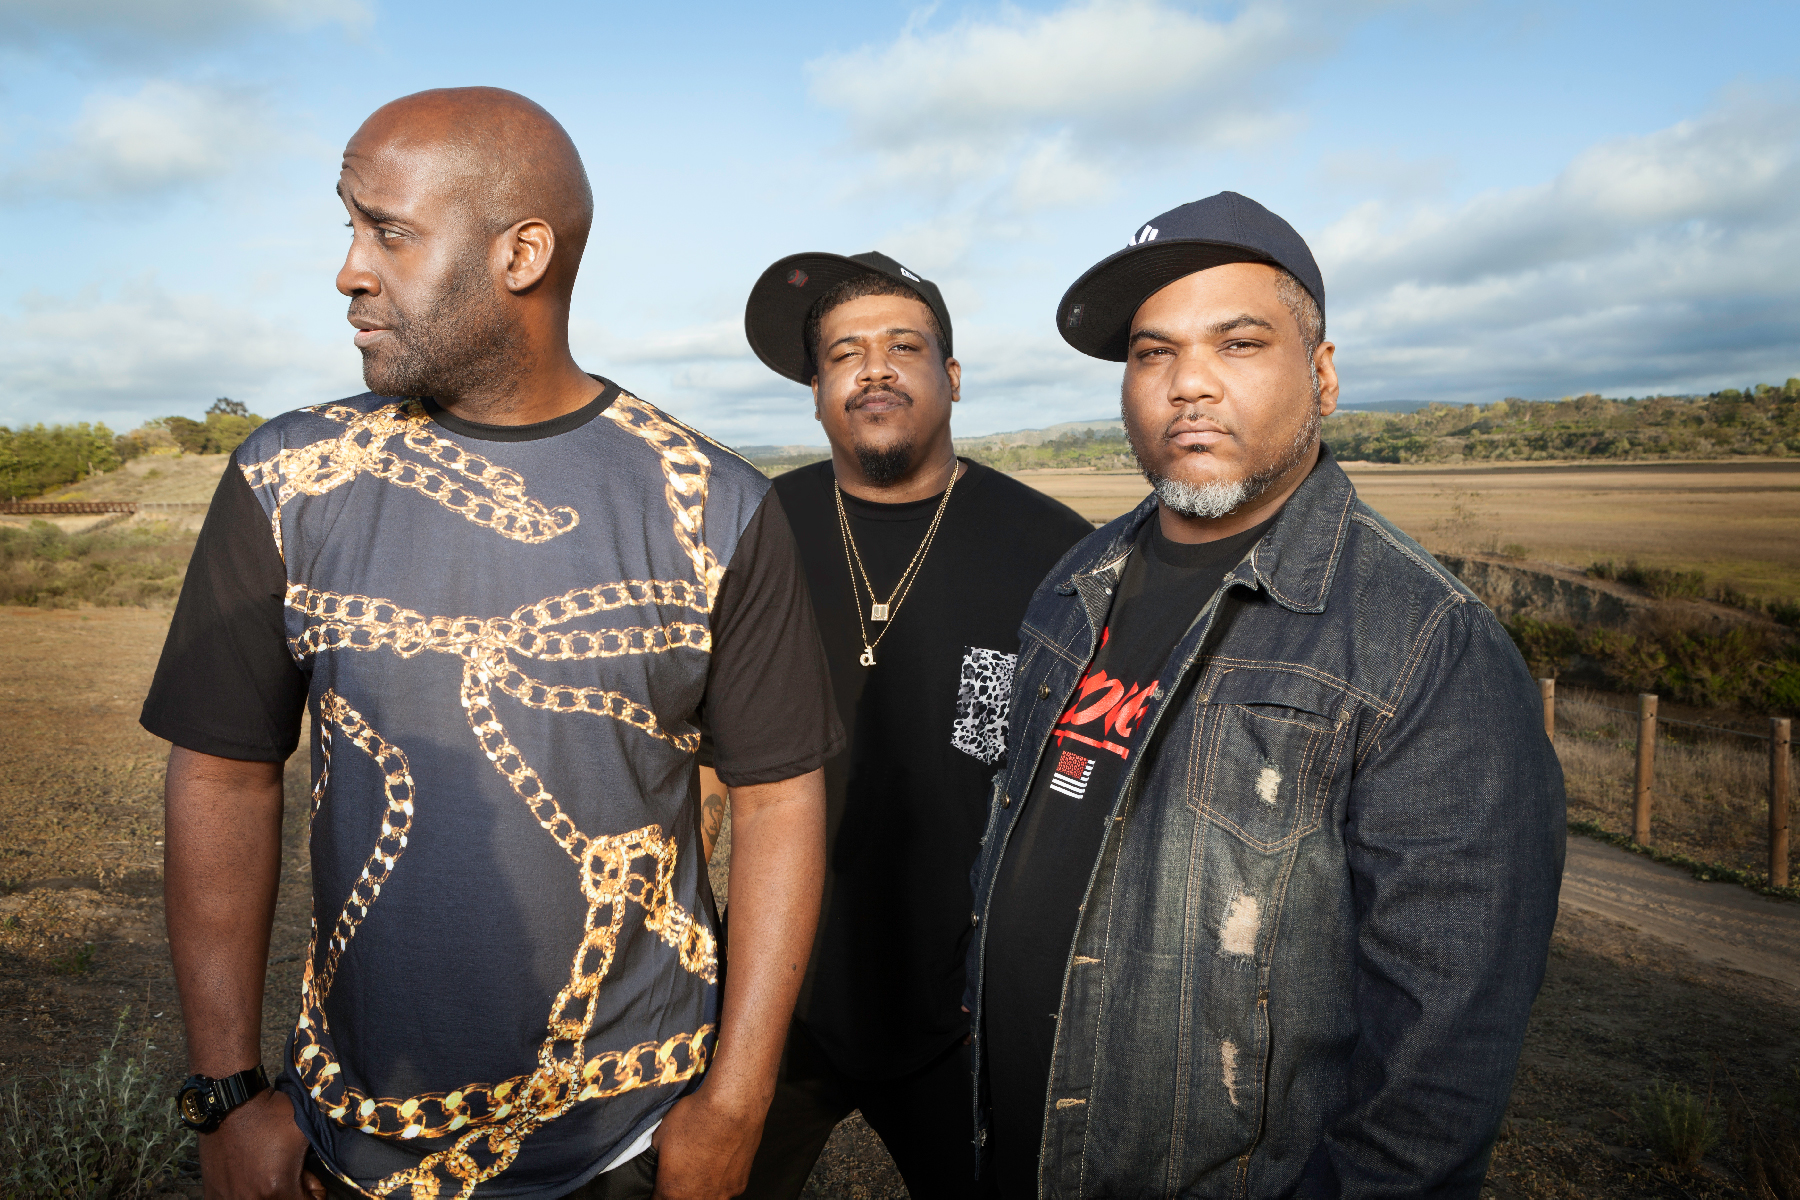 De La Soul to Make Entire Catalog Available for Free for 25